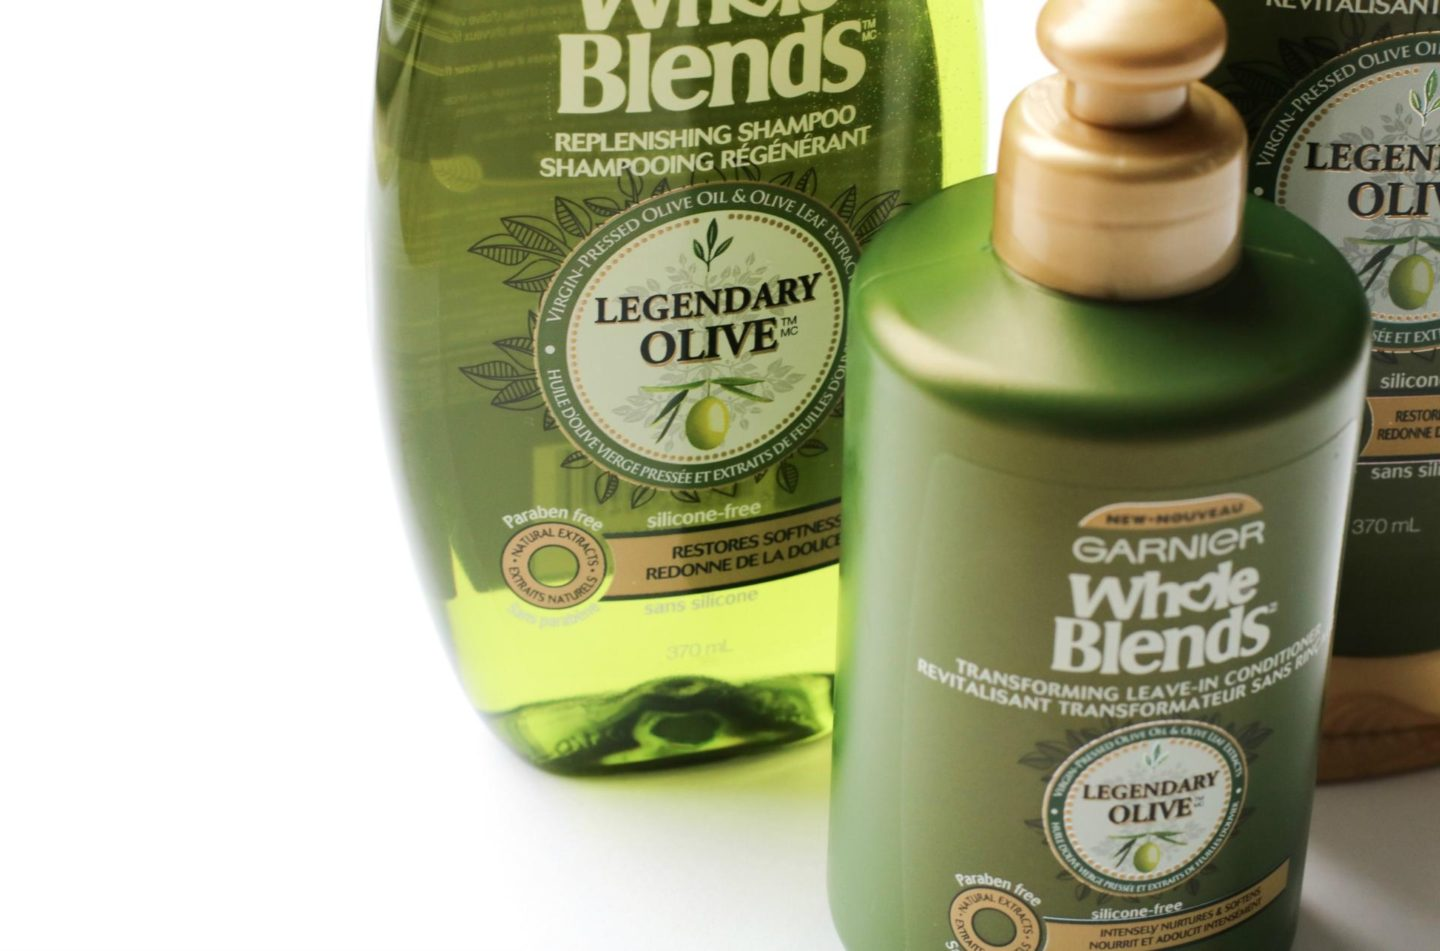 Protective Hair Styles: Everything You Need To Know | Garnier Whole Blends Legendary Olive